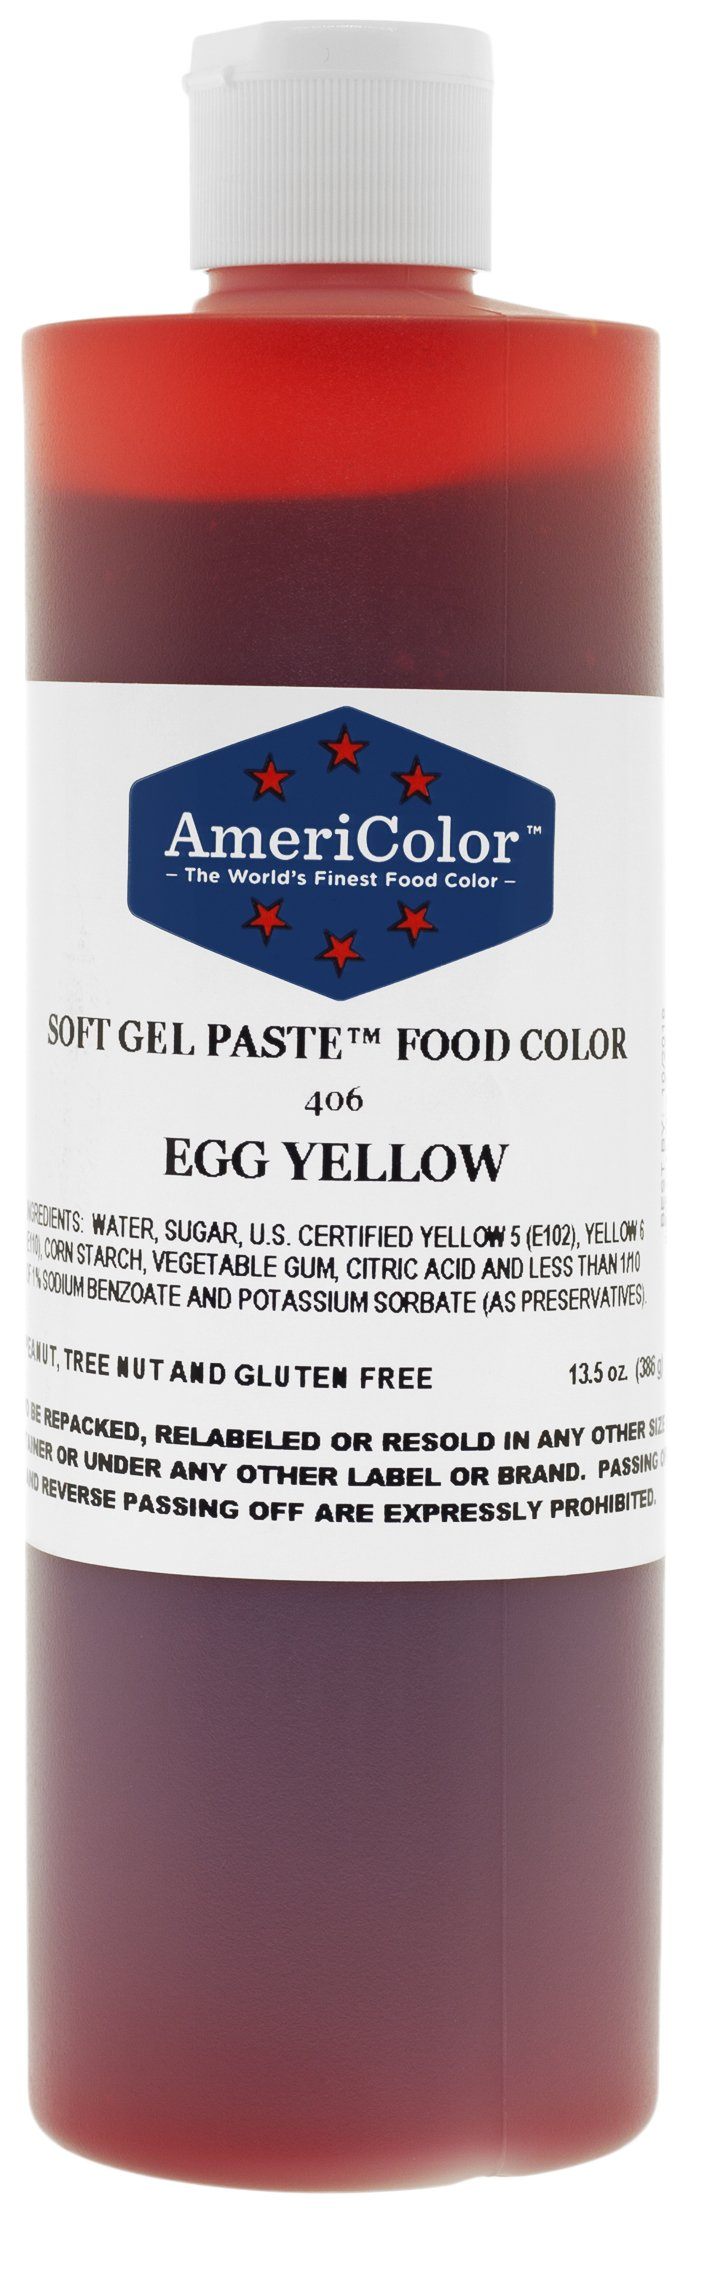 EGG YELLOW 13.5 Ounce Soft Gel Paste Food Color